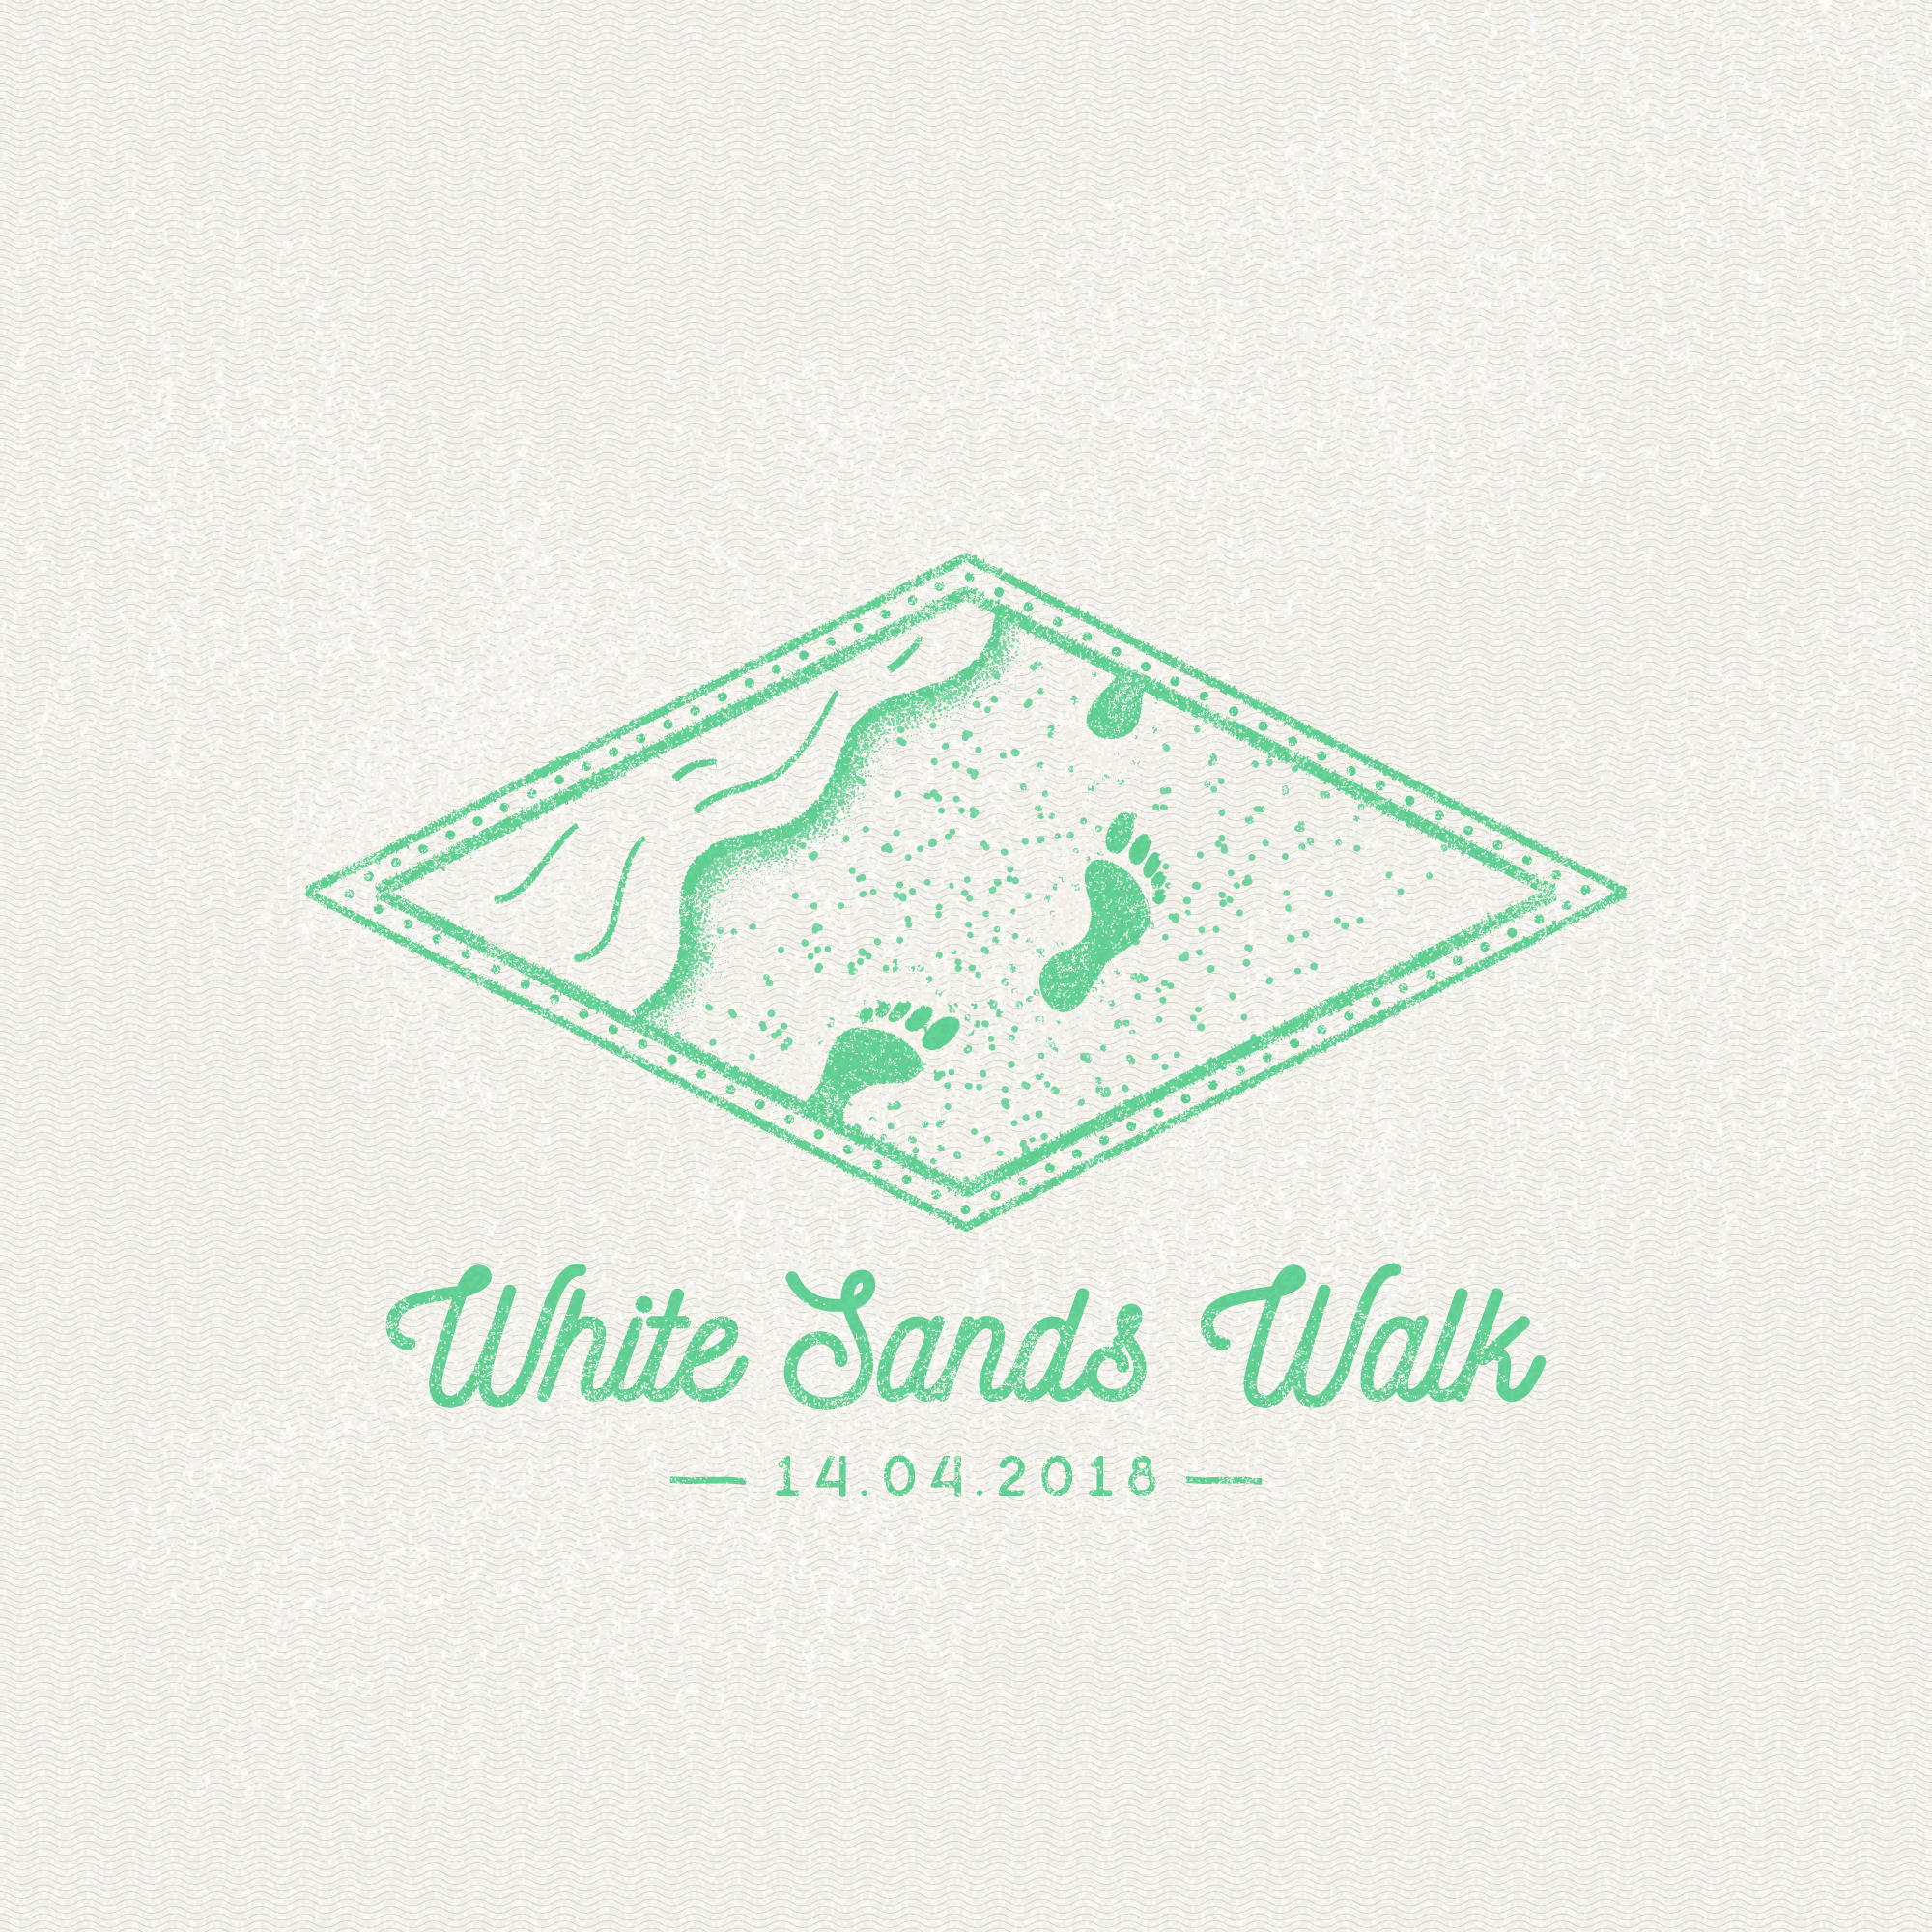 White Sands Walk, NSW passport stamp